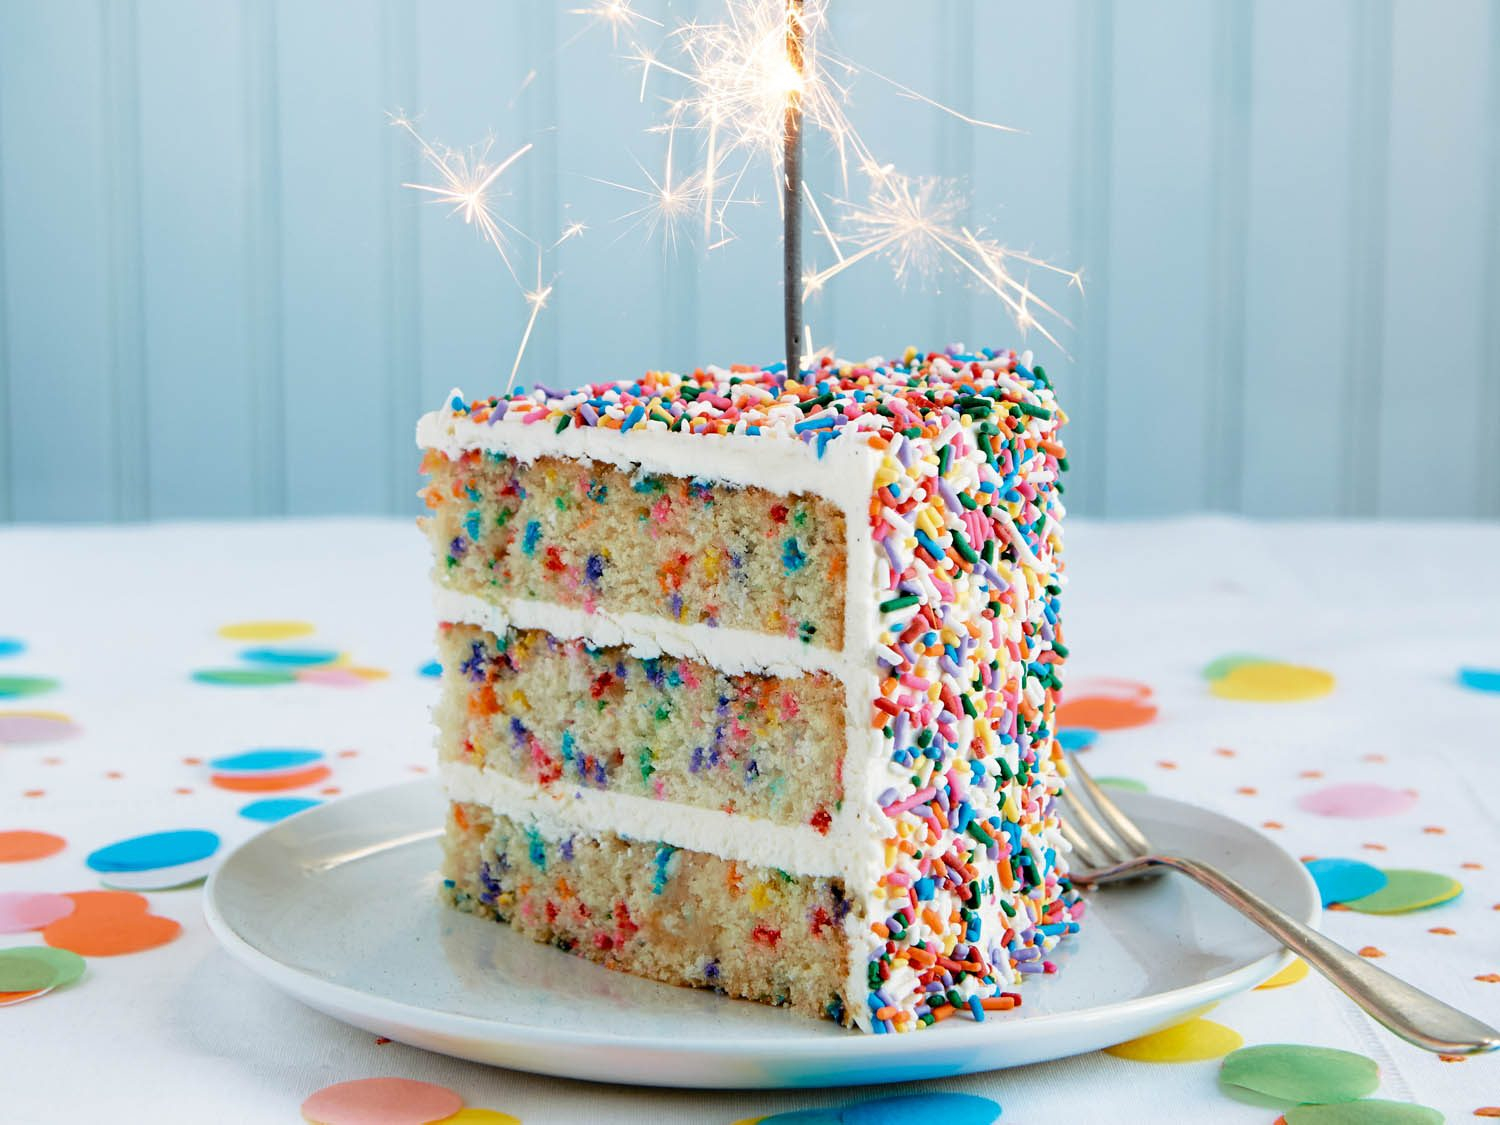 Best Birthday Cake Recipe Ultimate Birthday Cake From Baked Occasions Recipe Serious Eats